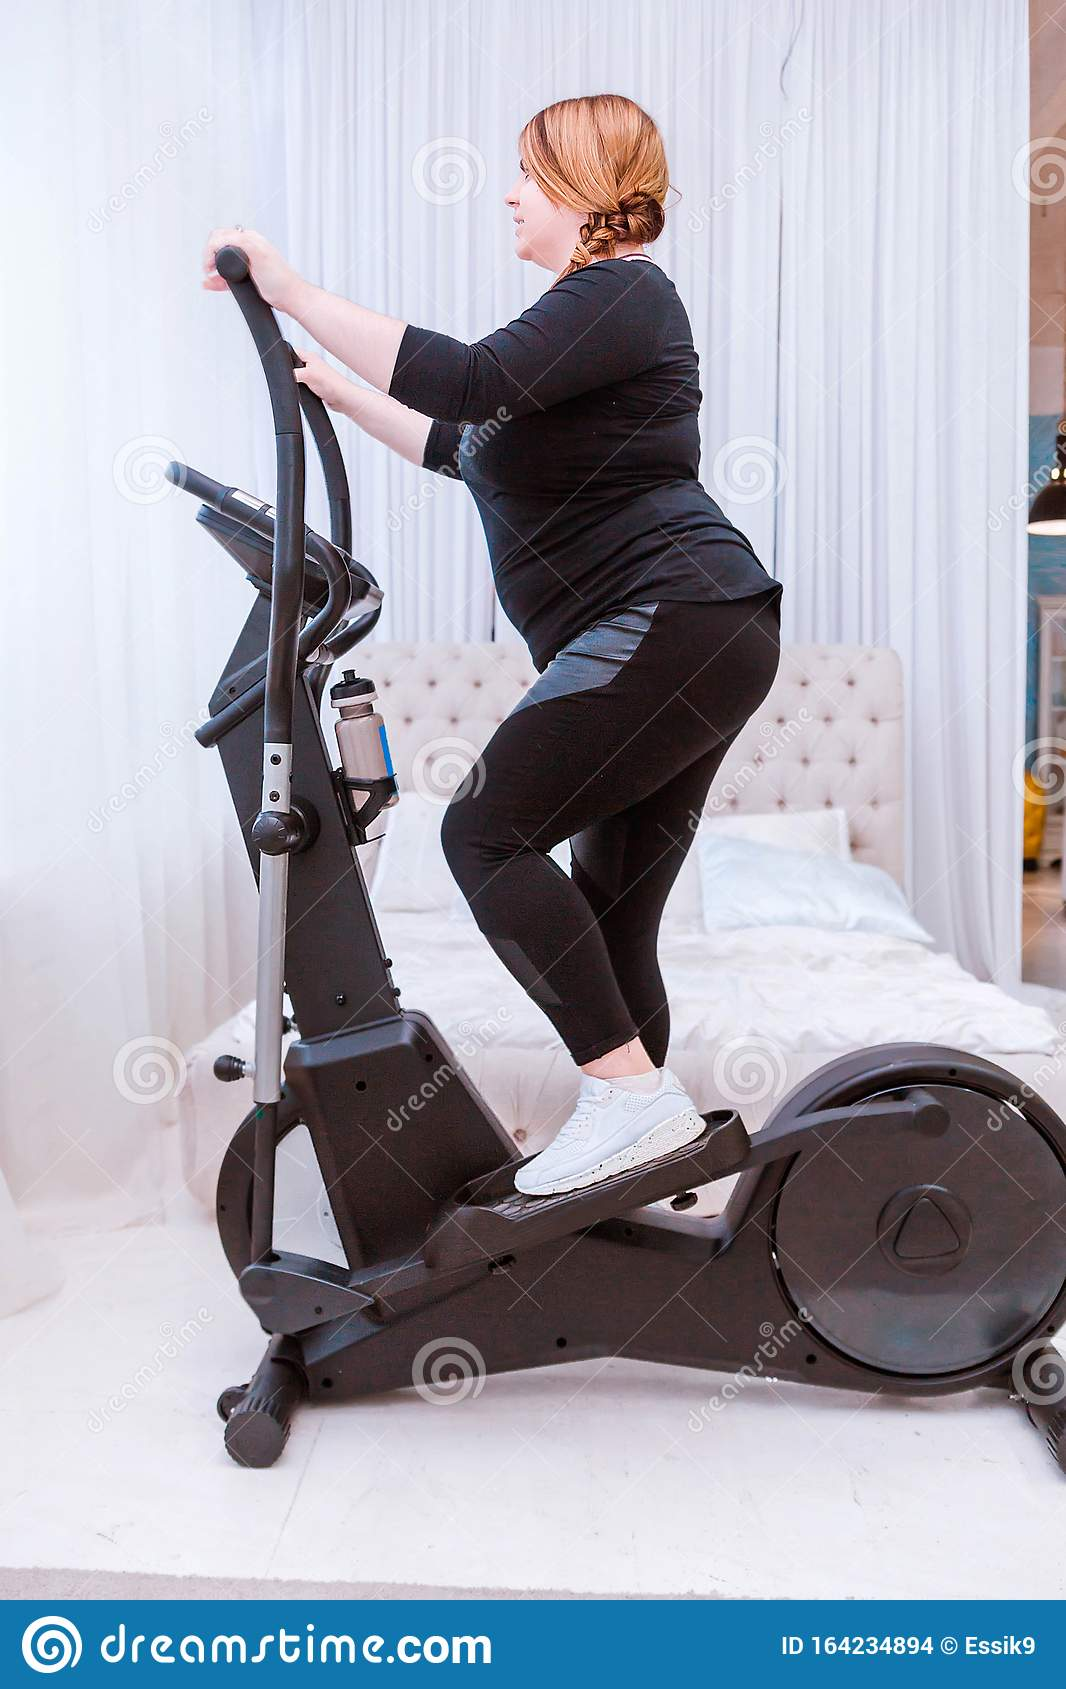 Model - A Fat Woman, Trying To Lose Weight And At Home Is Engaged In An  Elliptical Trainer Stock Photo - Image of fitness, machine: 164234894